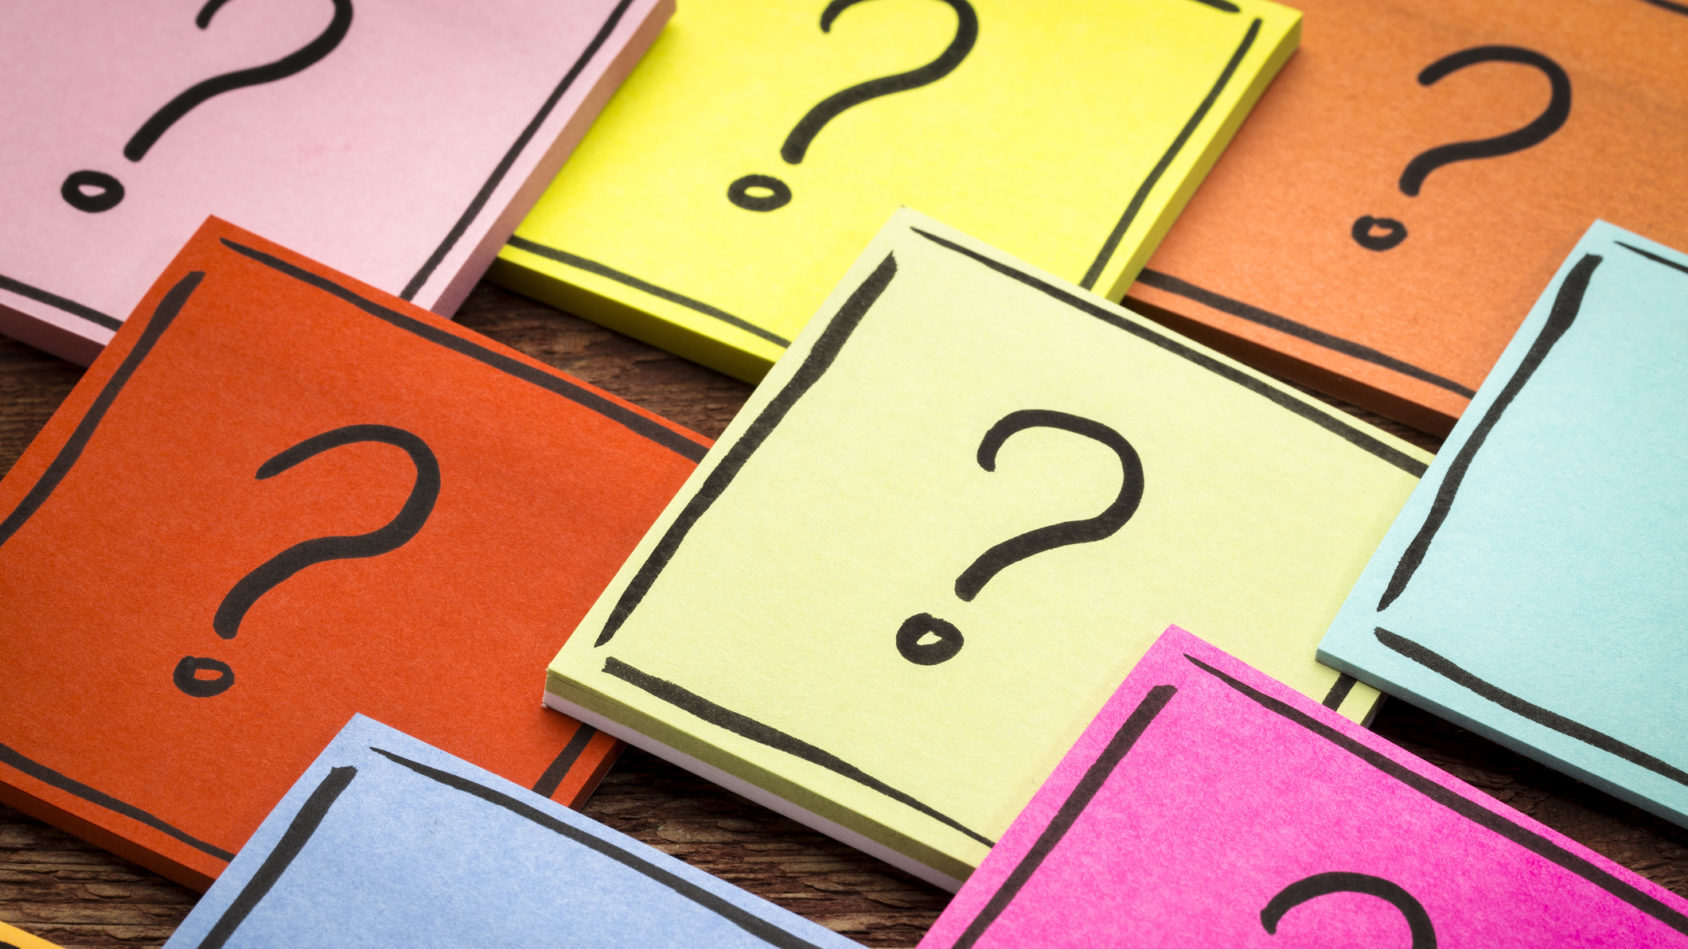 question mark concept - handwriting in black ink on colorful sticky otes against rustic wood